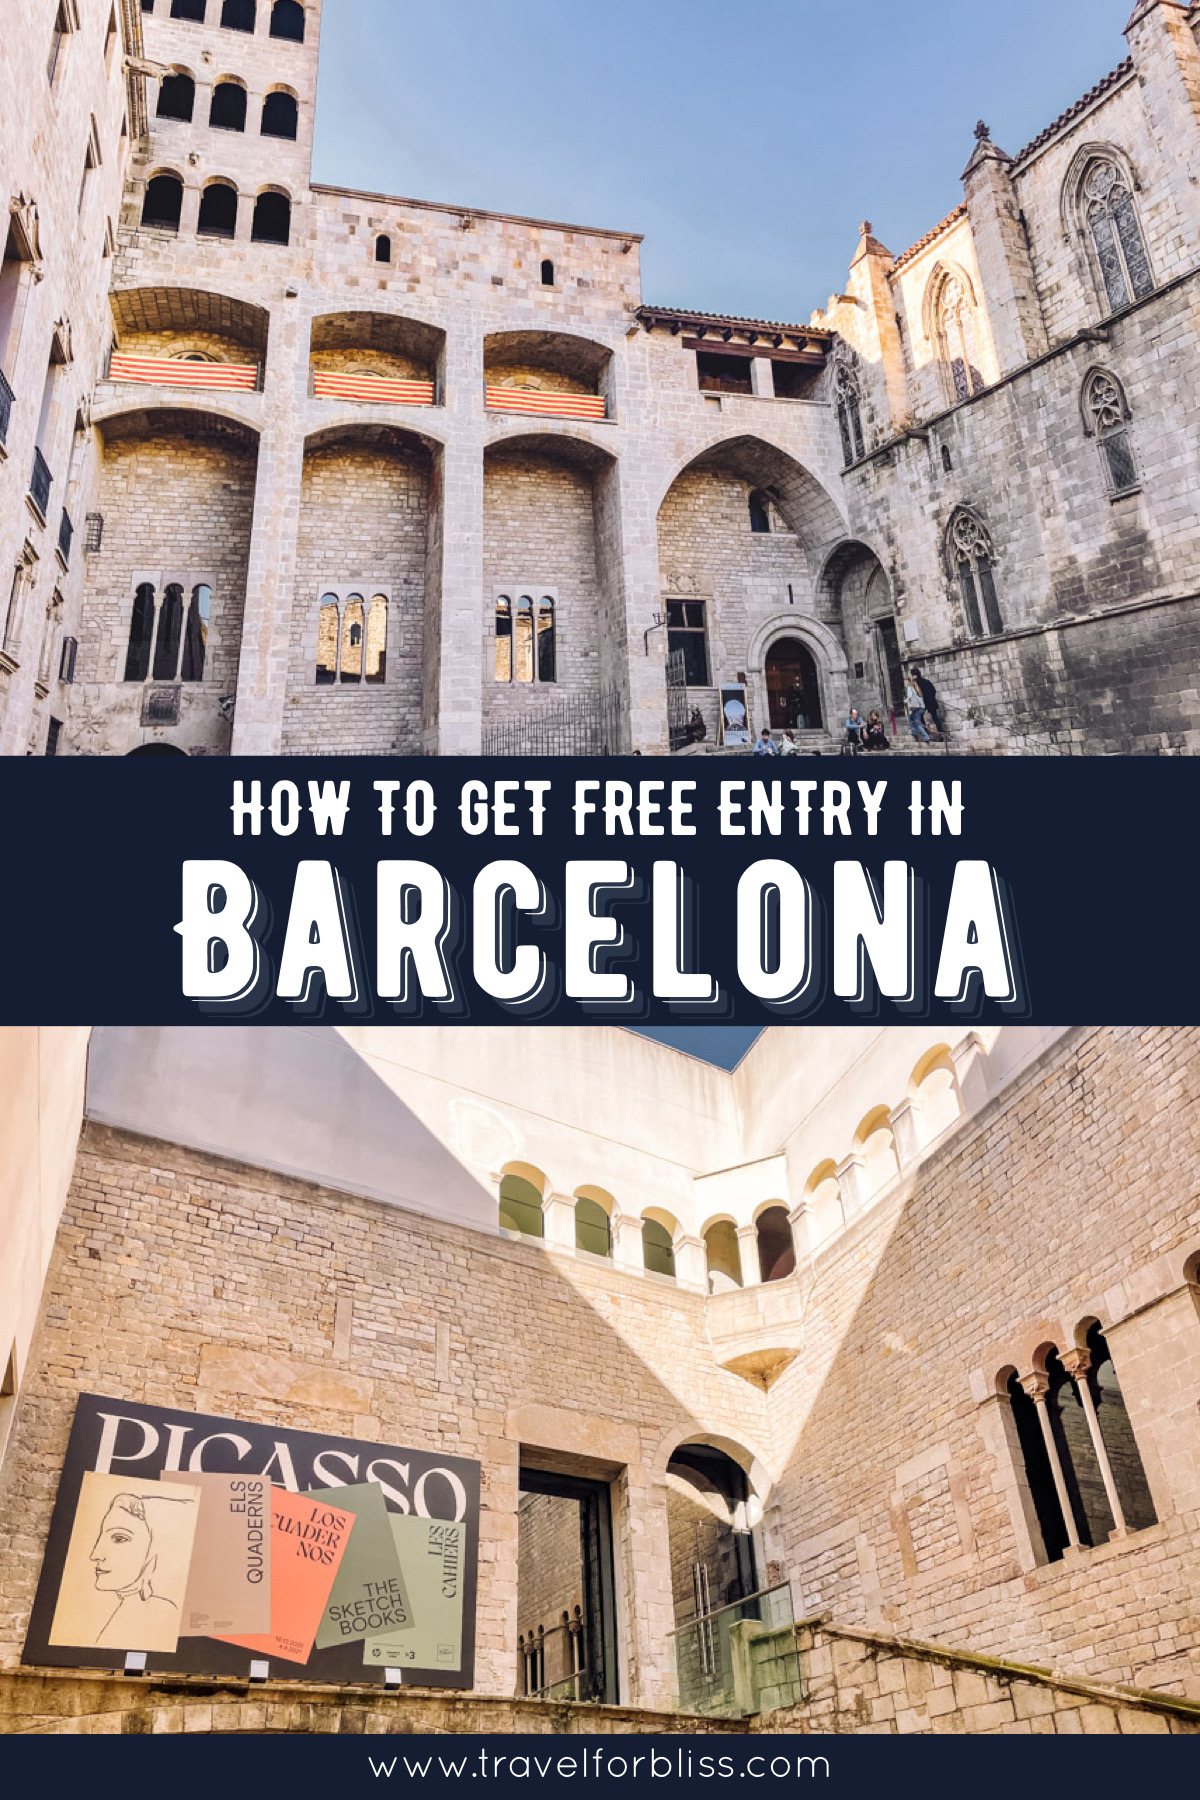 Here's a guide on how to get free entry in Barcelona to attractions you usually have to pay for.